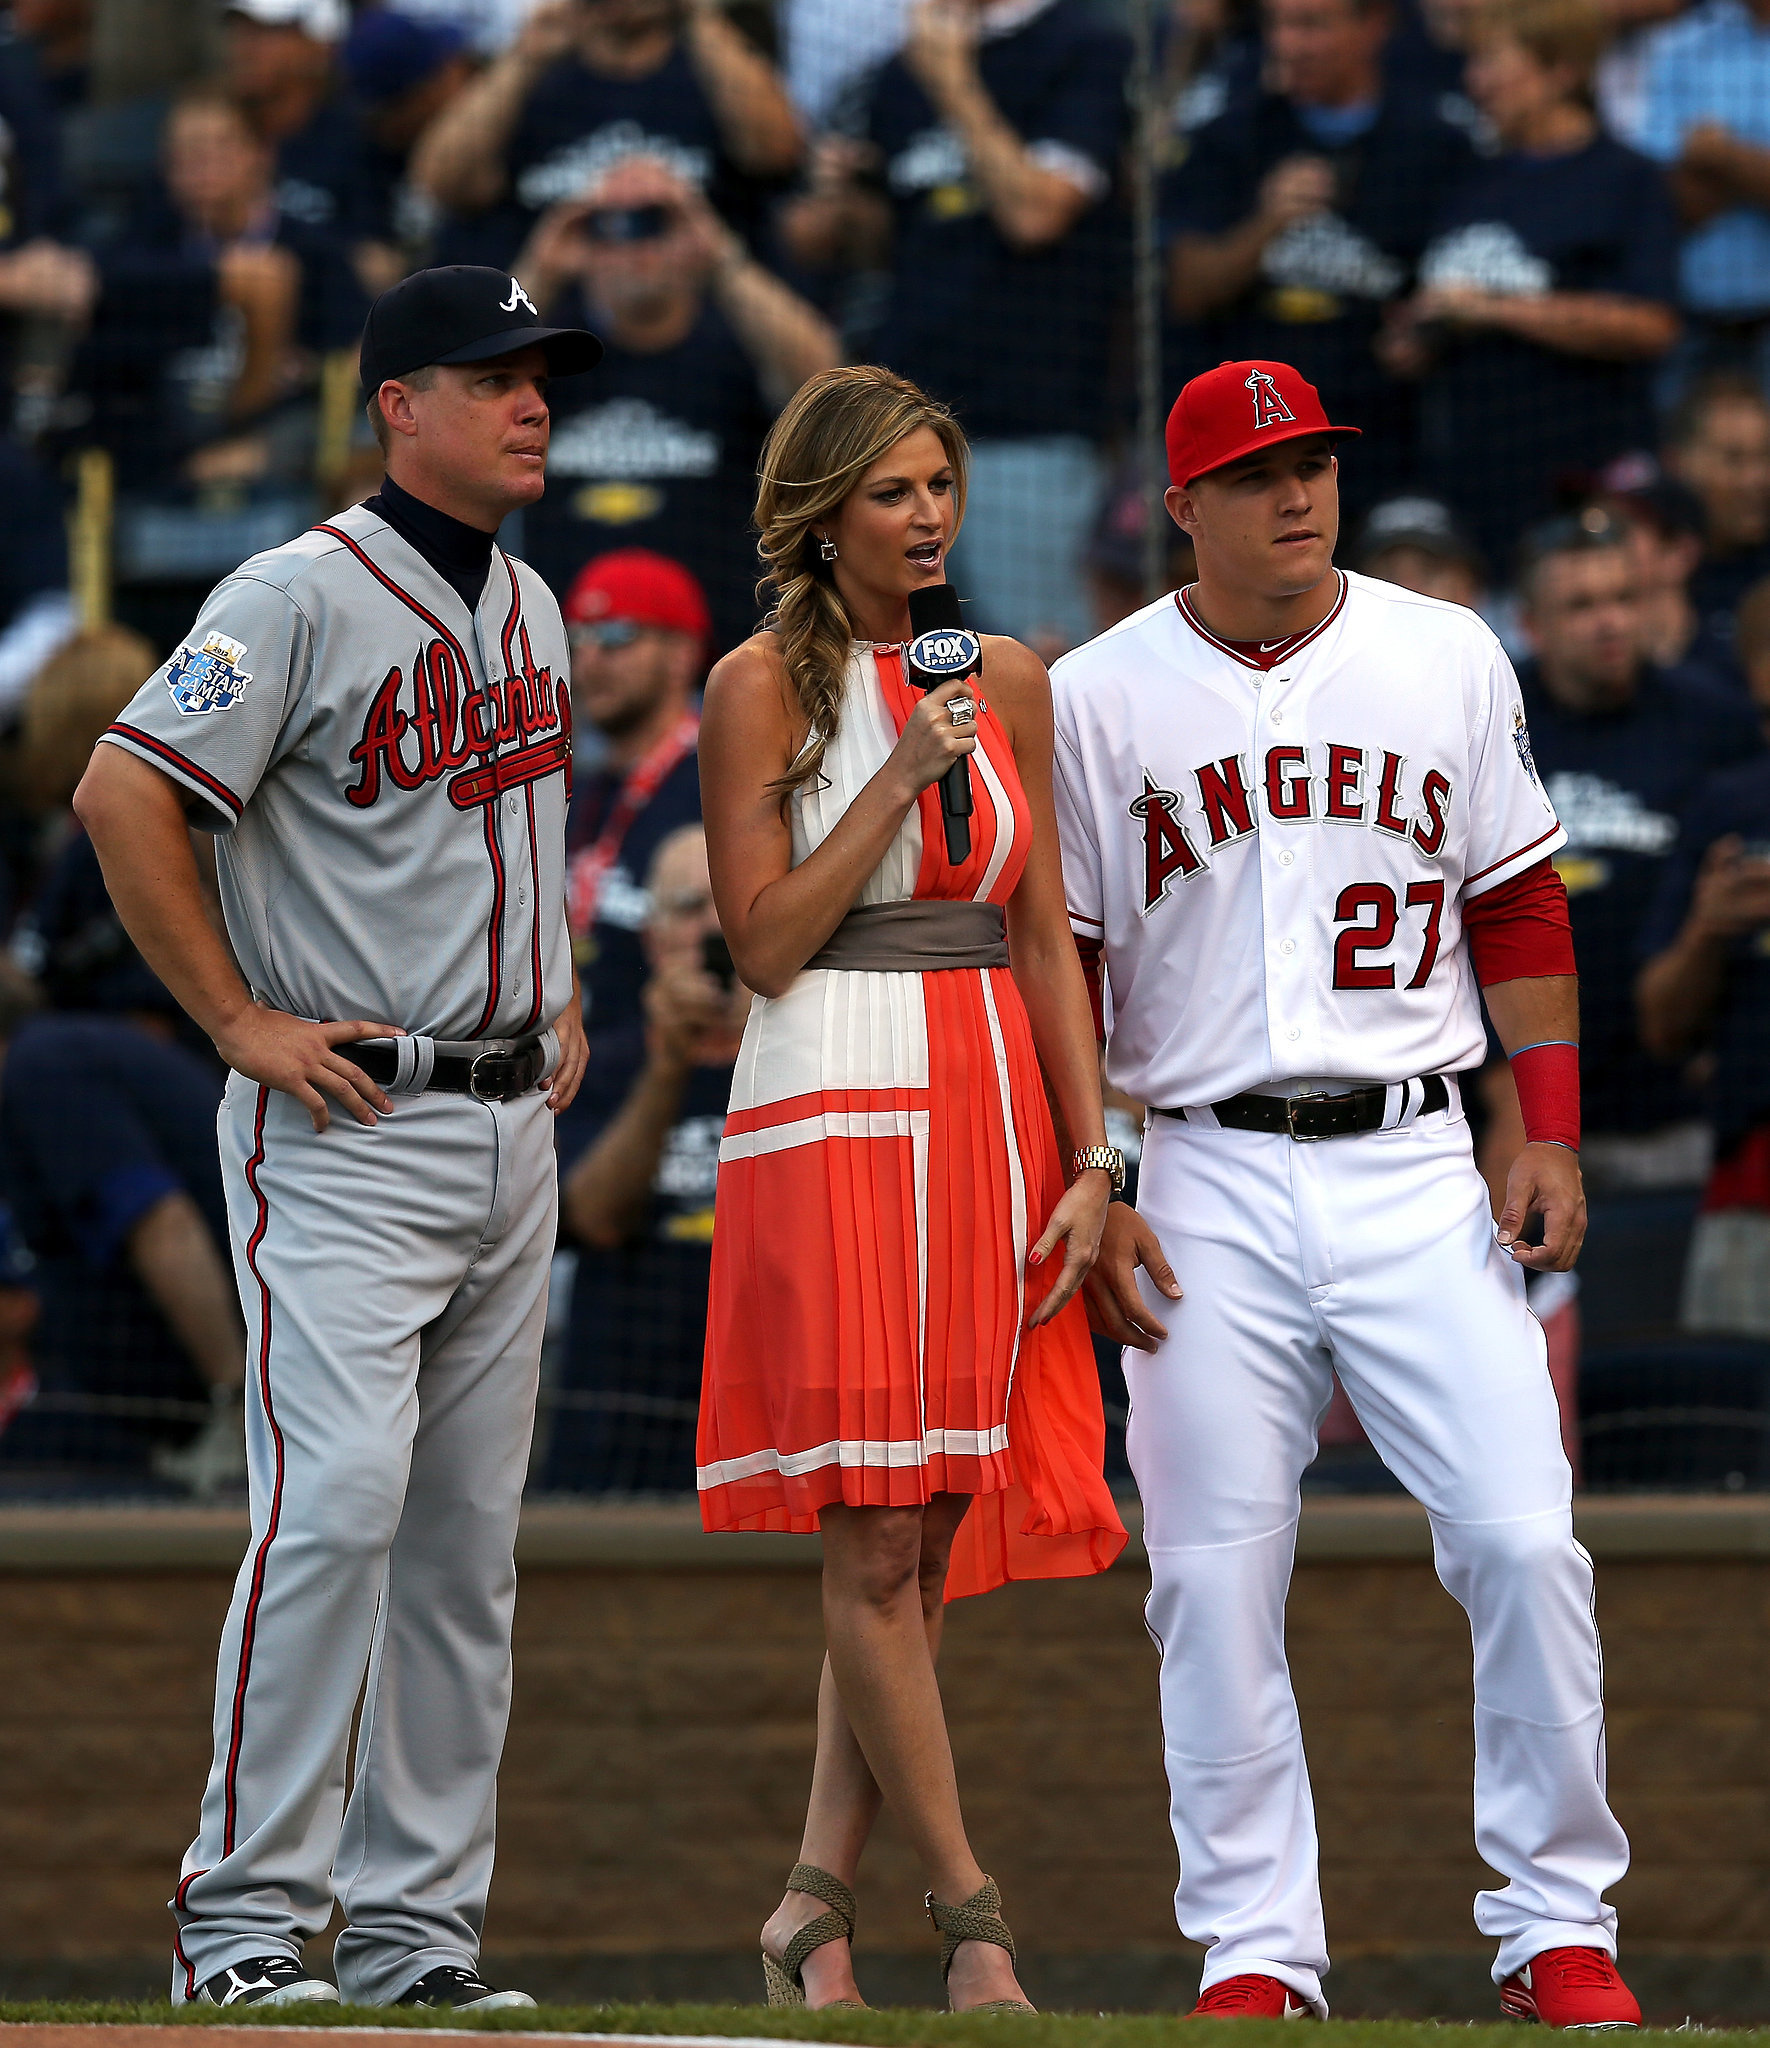 In 2012, Erin made headlines again when she left her role at ESPN to work for Fox Sports as a field reporter for most of the network's major sporting events. It was a big move and caused speculation that ESPN didn't really want to keep her and that other networks, like NBC and ABC, weren't interested in her.